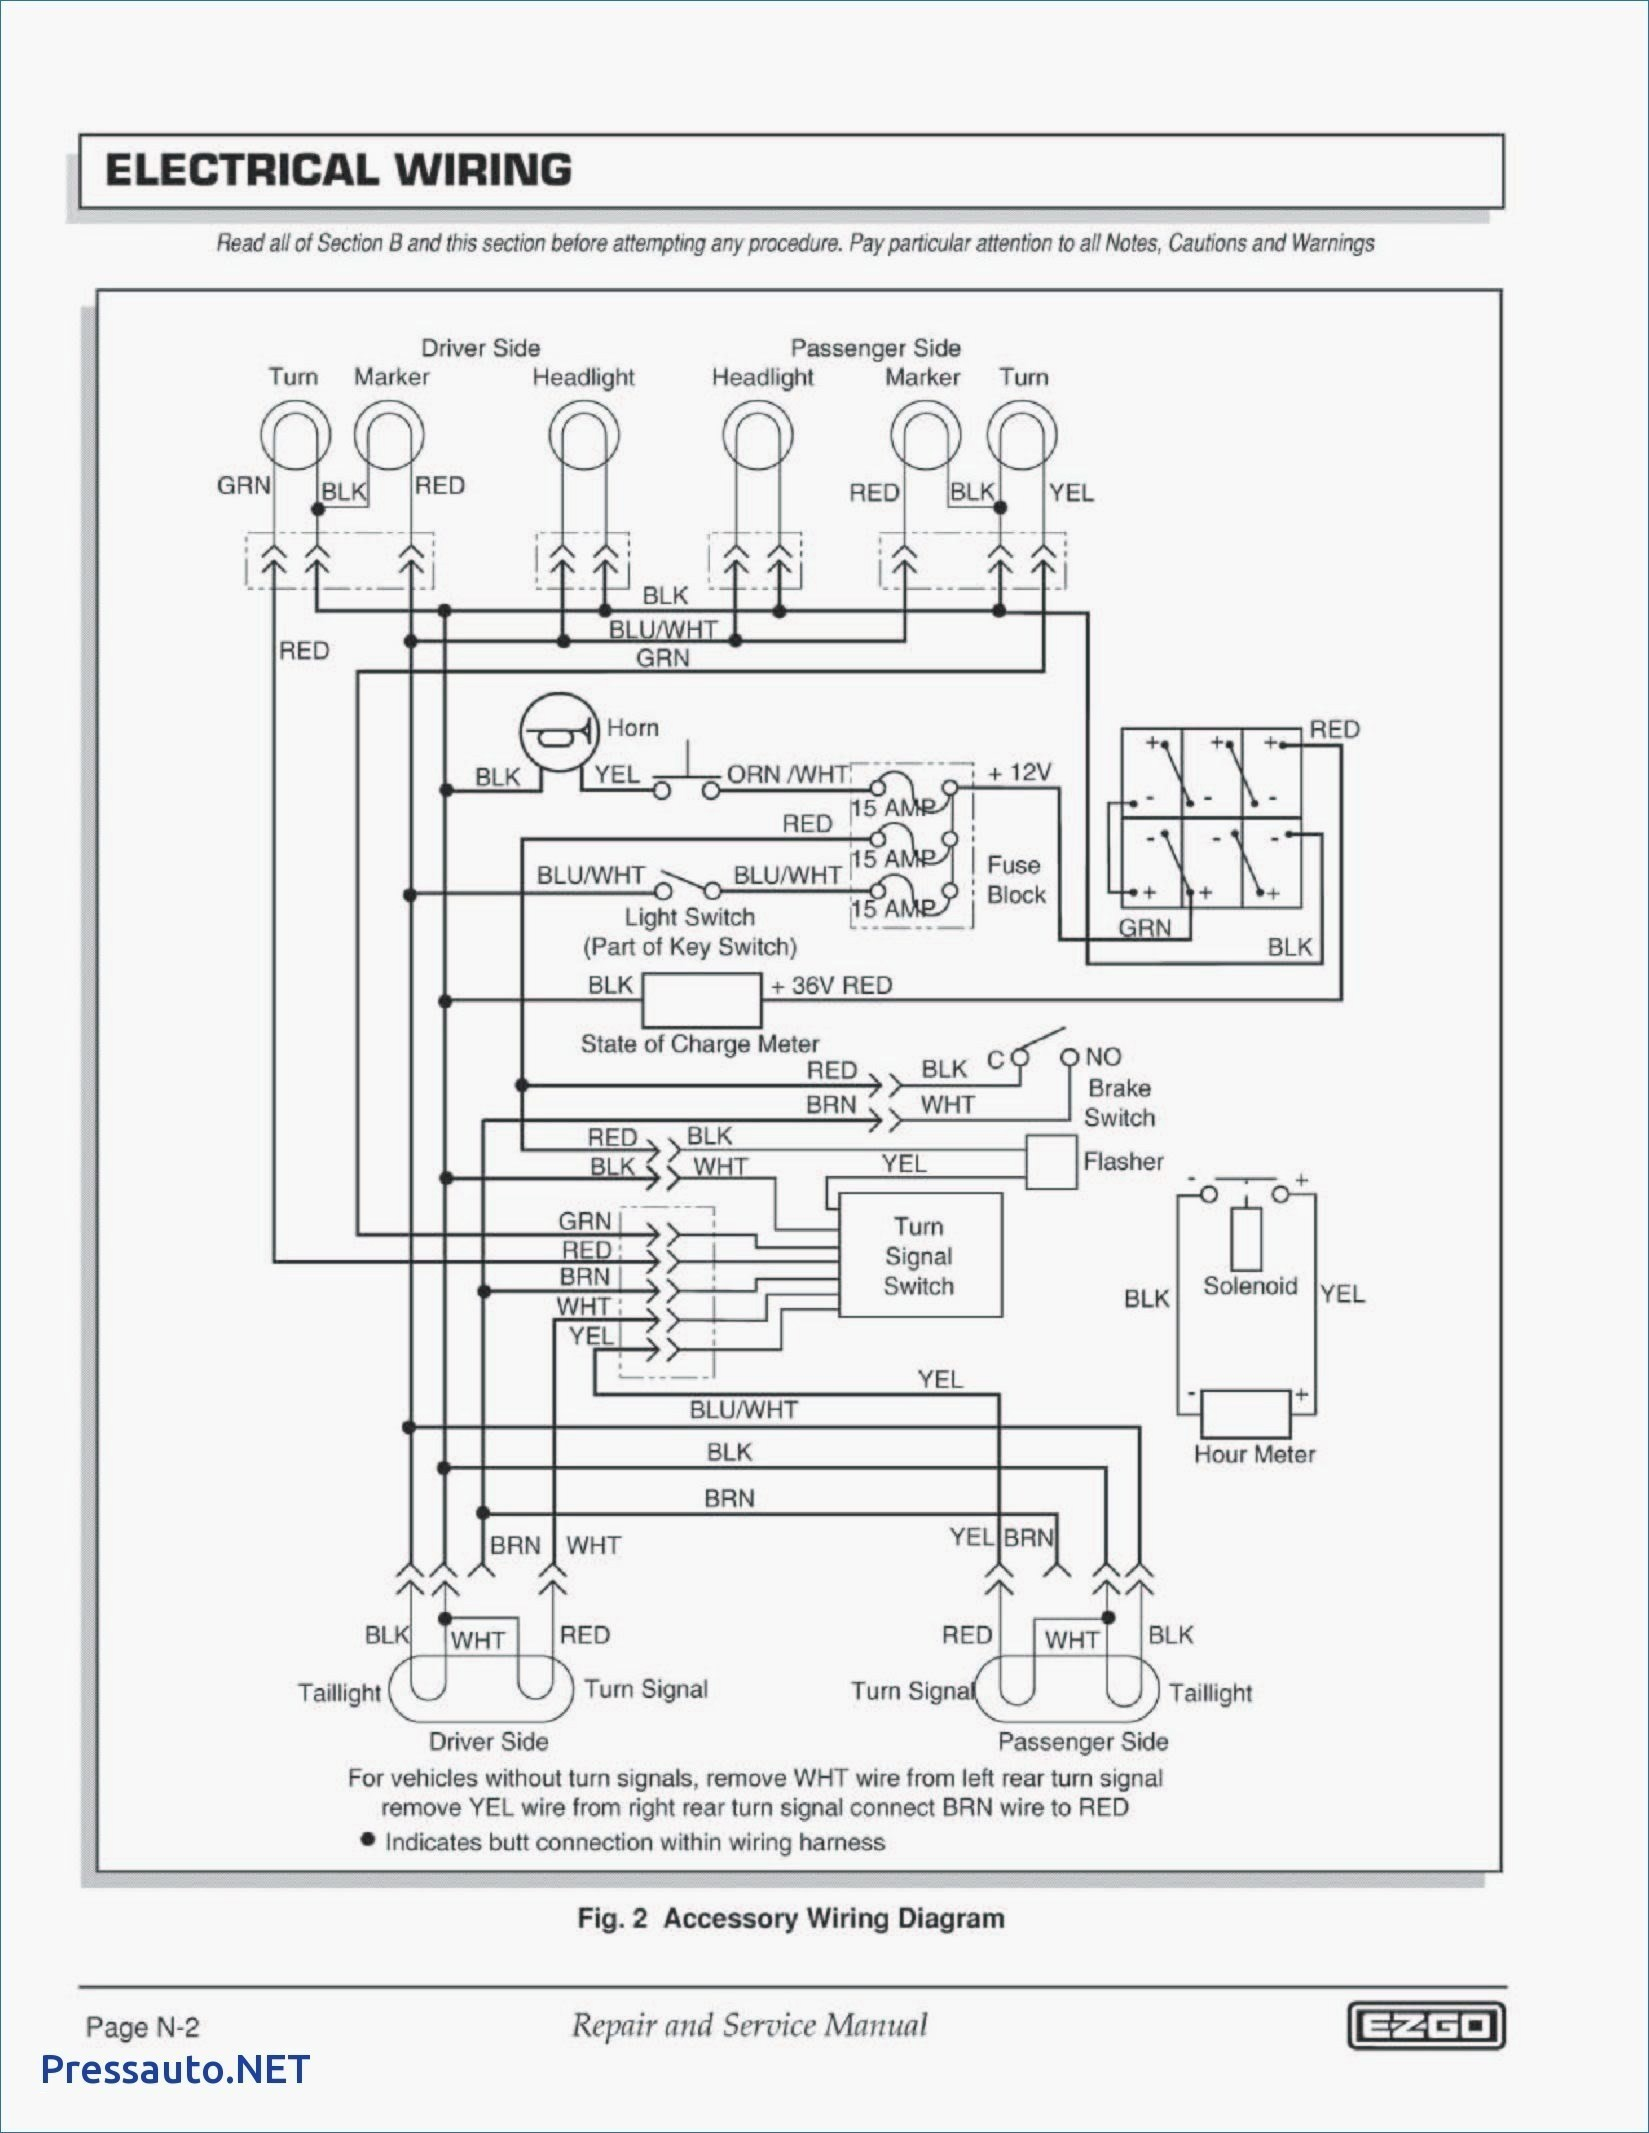 30 Ez Go Gas Golf Cart Wiring Diagram Pdf - Wiring Diagram ...